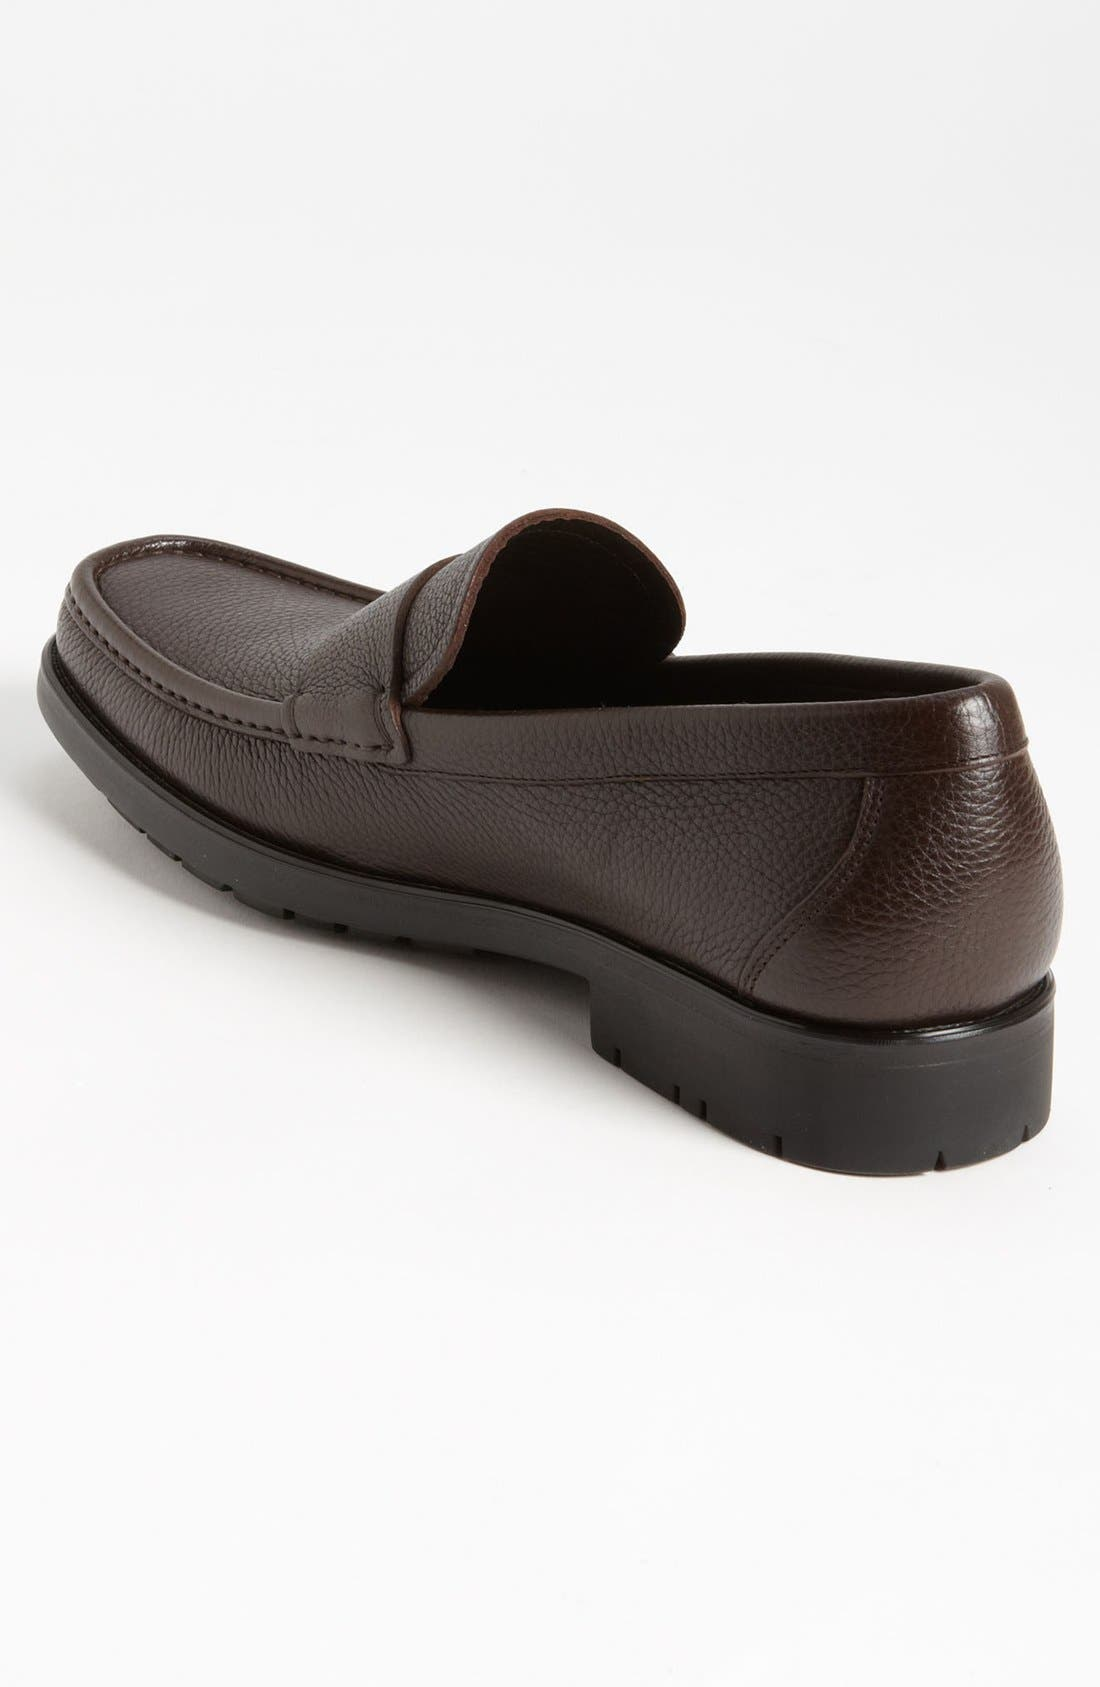 Alternate Image 2  - Salvatore Ferragamo 'Biliardo' Loafer